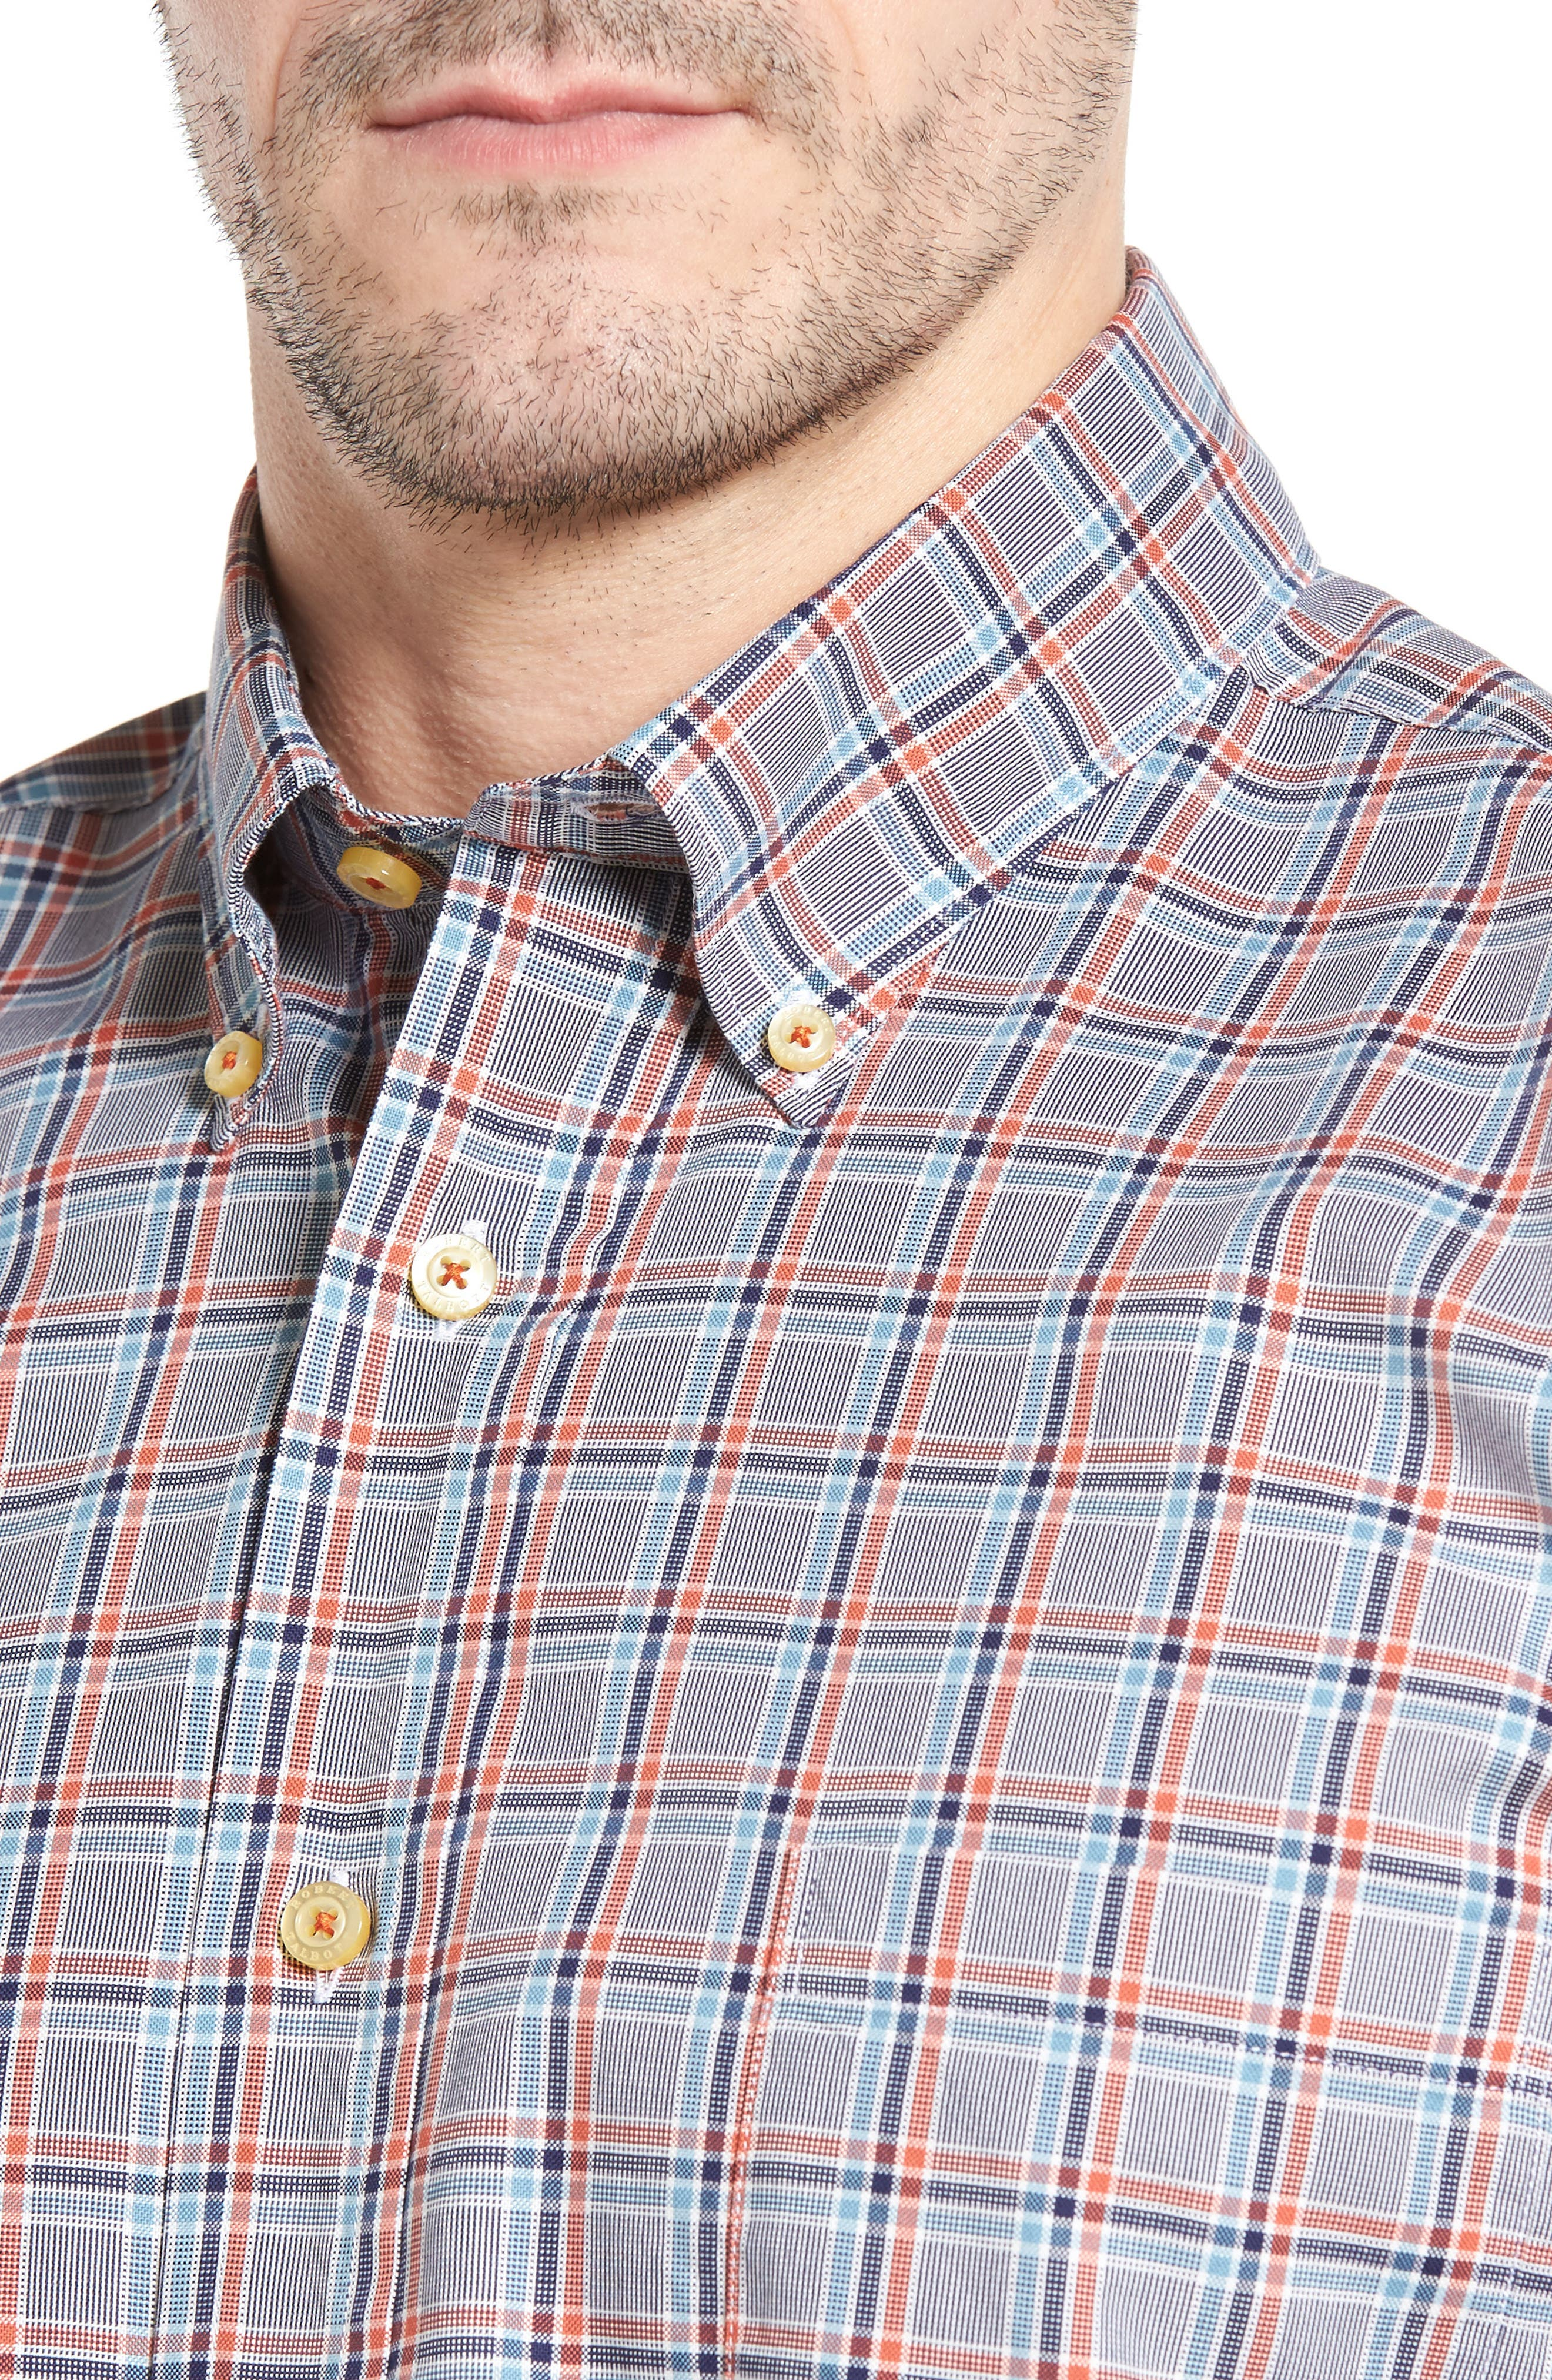 Anderson Classic Fit Plaid Oxford Sport Shirt,                             Alternate thumbnail 4, color,                             401